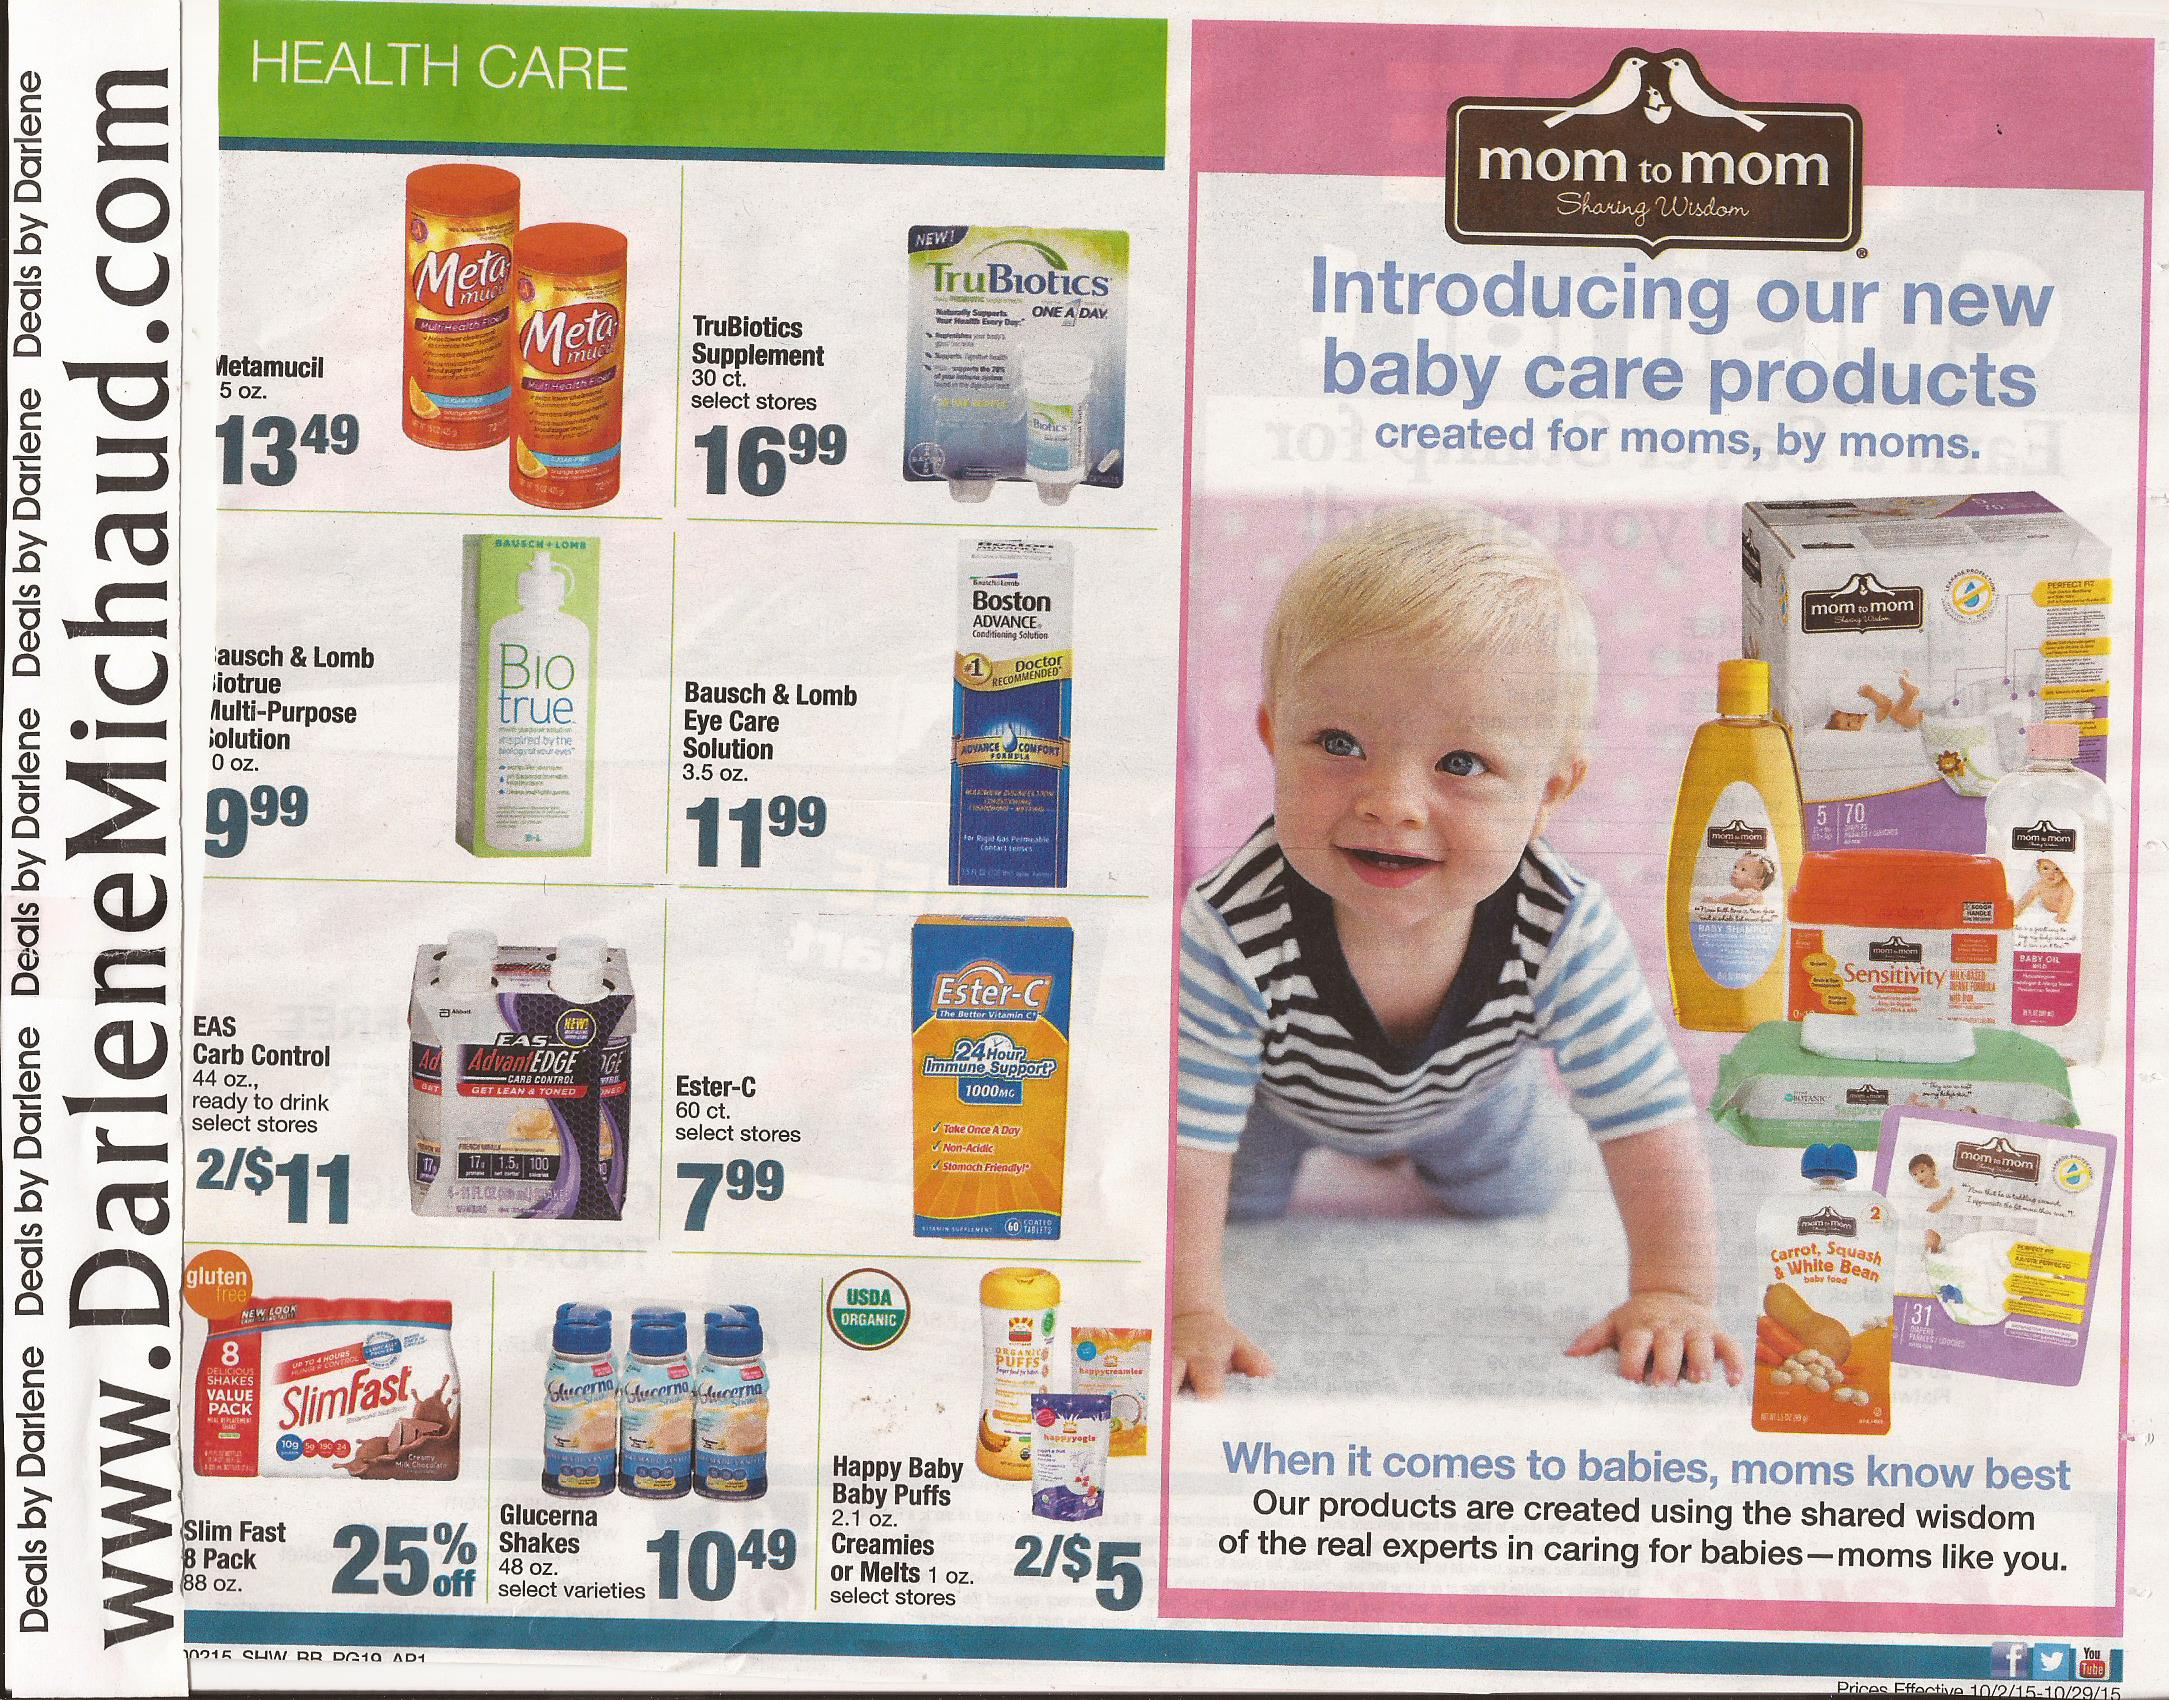 shaws-big-book-savings-10-2-10-29-page-19